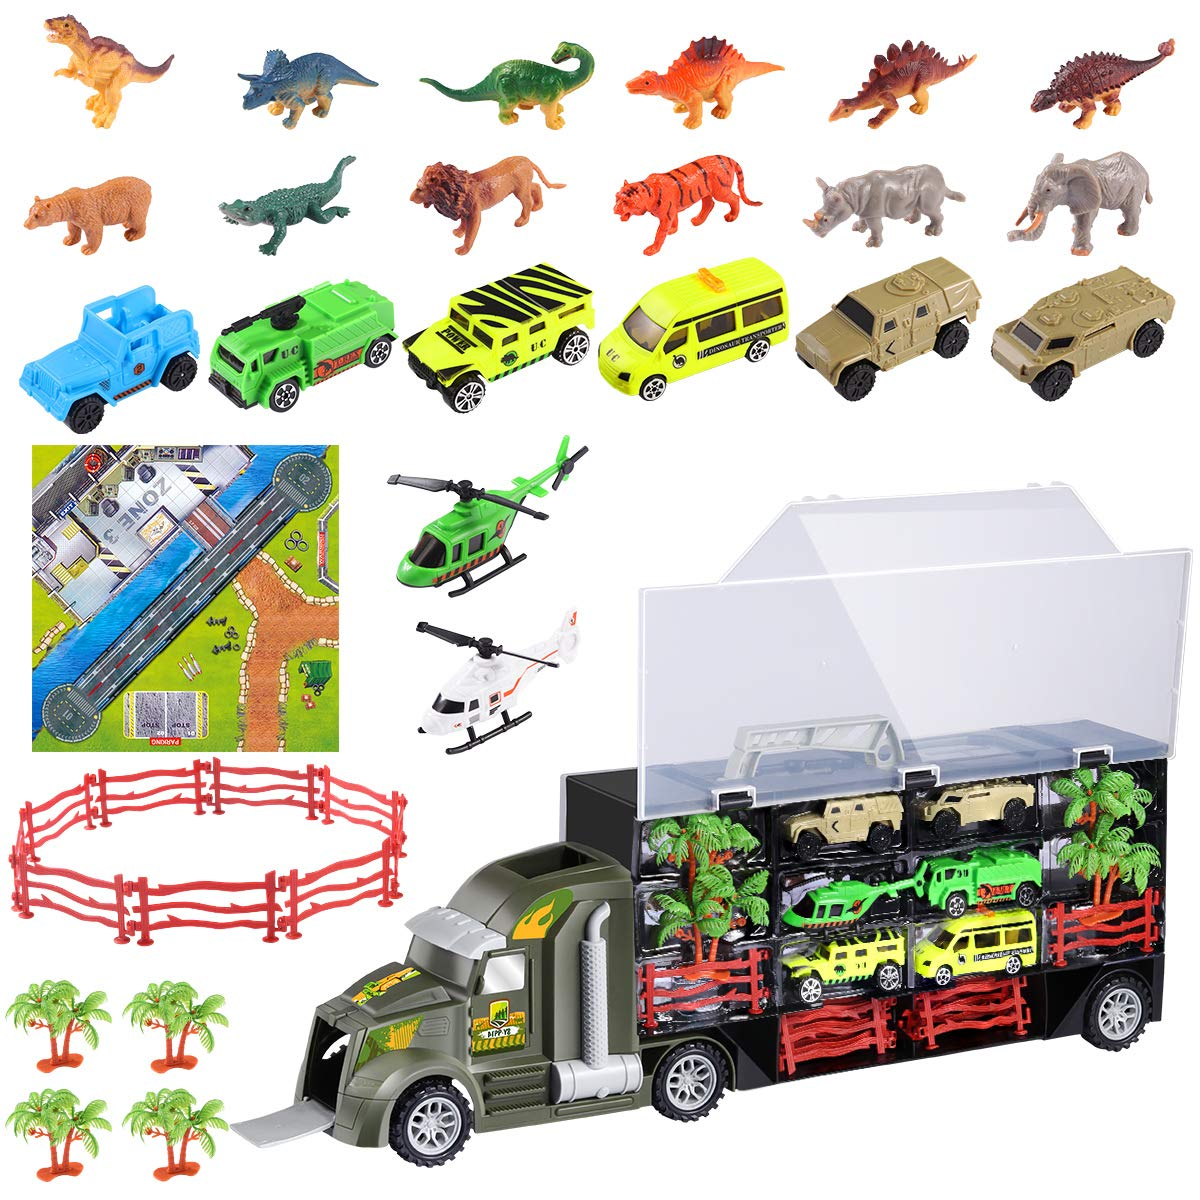 iBaseToy 35 Pieces Dinosaur Toys Truck, Car Toys Transport Carrier Truck with 6 Dinosaurs, 6 Animals, 6 Off-Road Cars, 2 Helicopters, 4 Trees, 10 Fences and 1 Map for 3-12 Years Old Boys and Girls